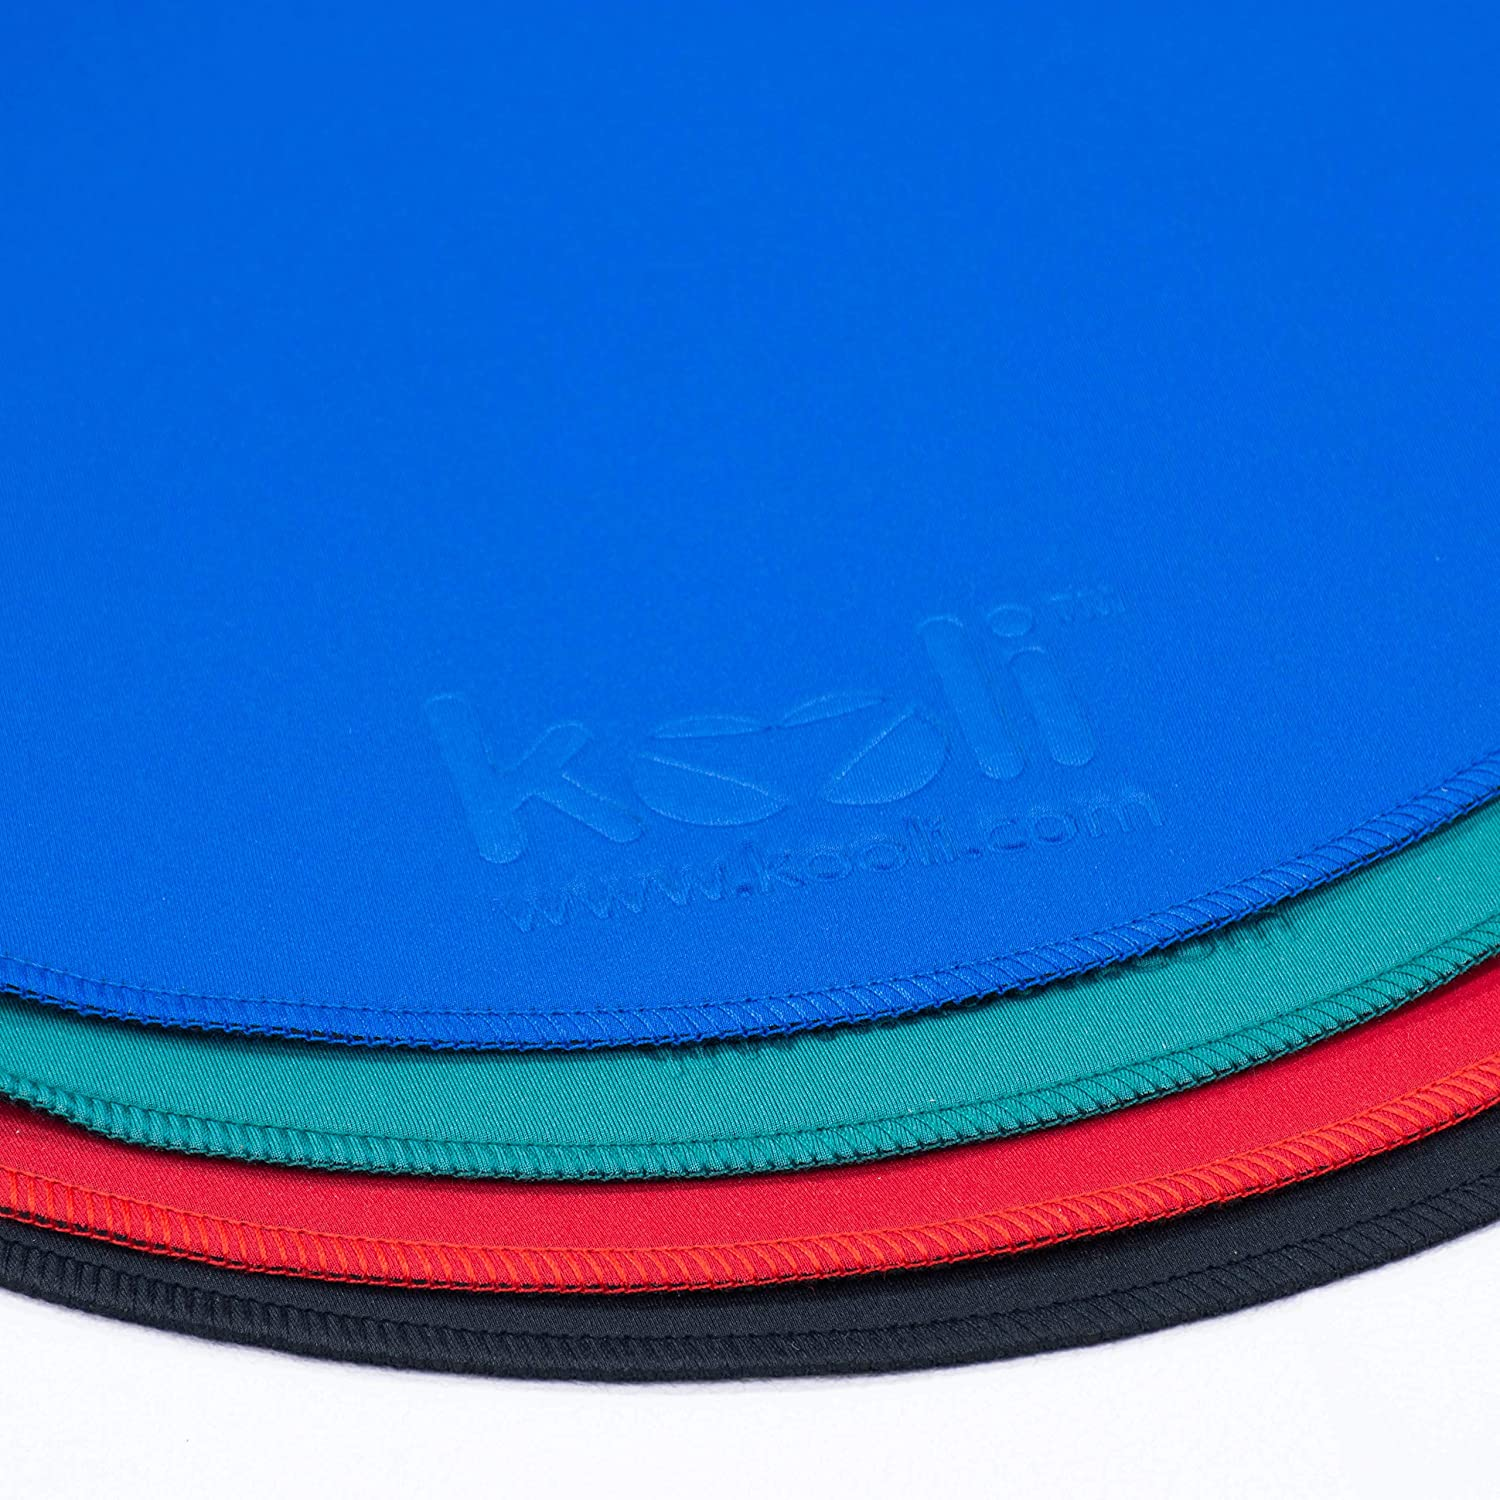 Swimming Pool Mat - Poolside Seating Mats - Pool Toys That are Fun but Also Functional Protecting Swimsuit, Bathing Suits, Swim Trunks from The hot Sun or Cement (4 Pack)